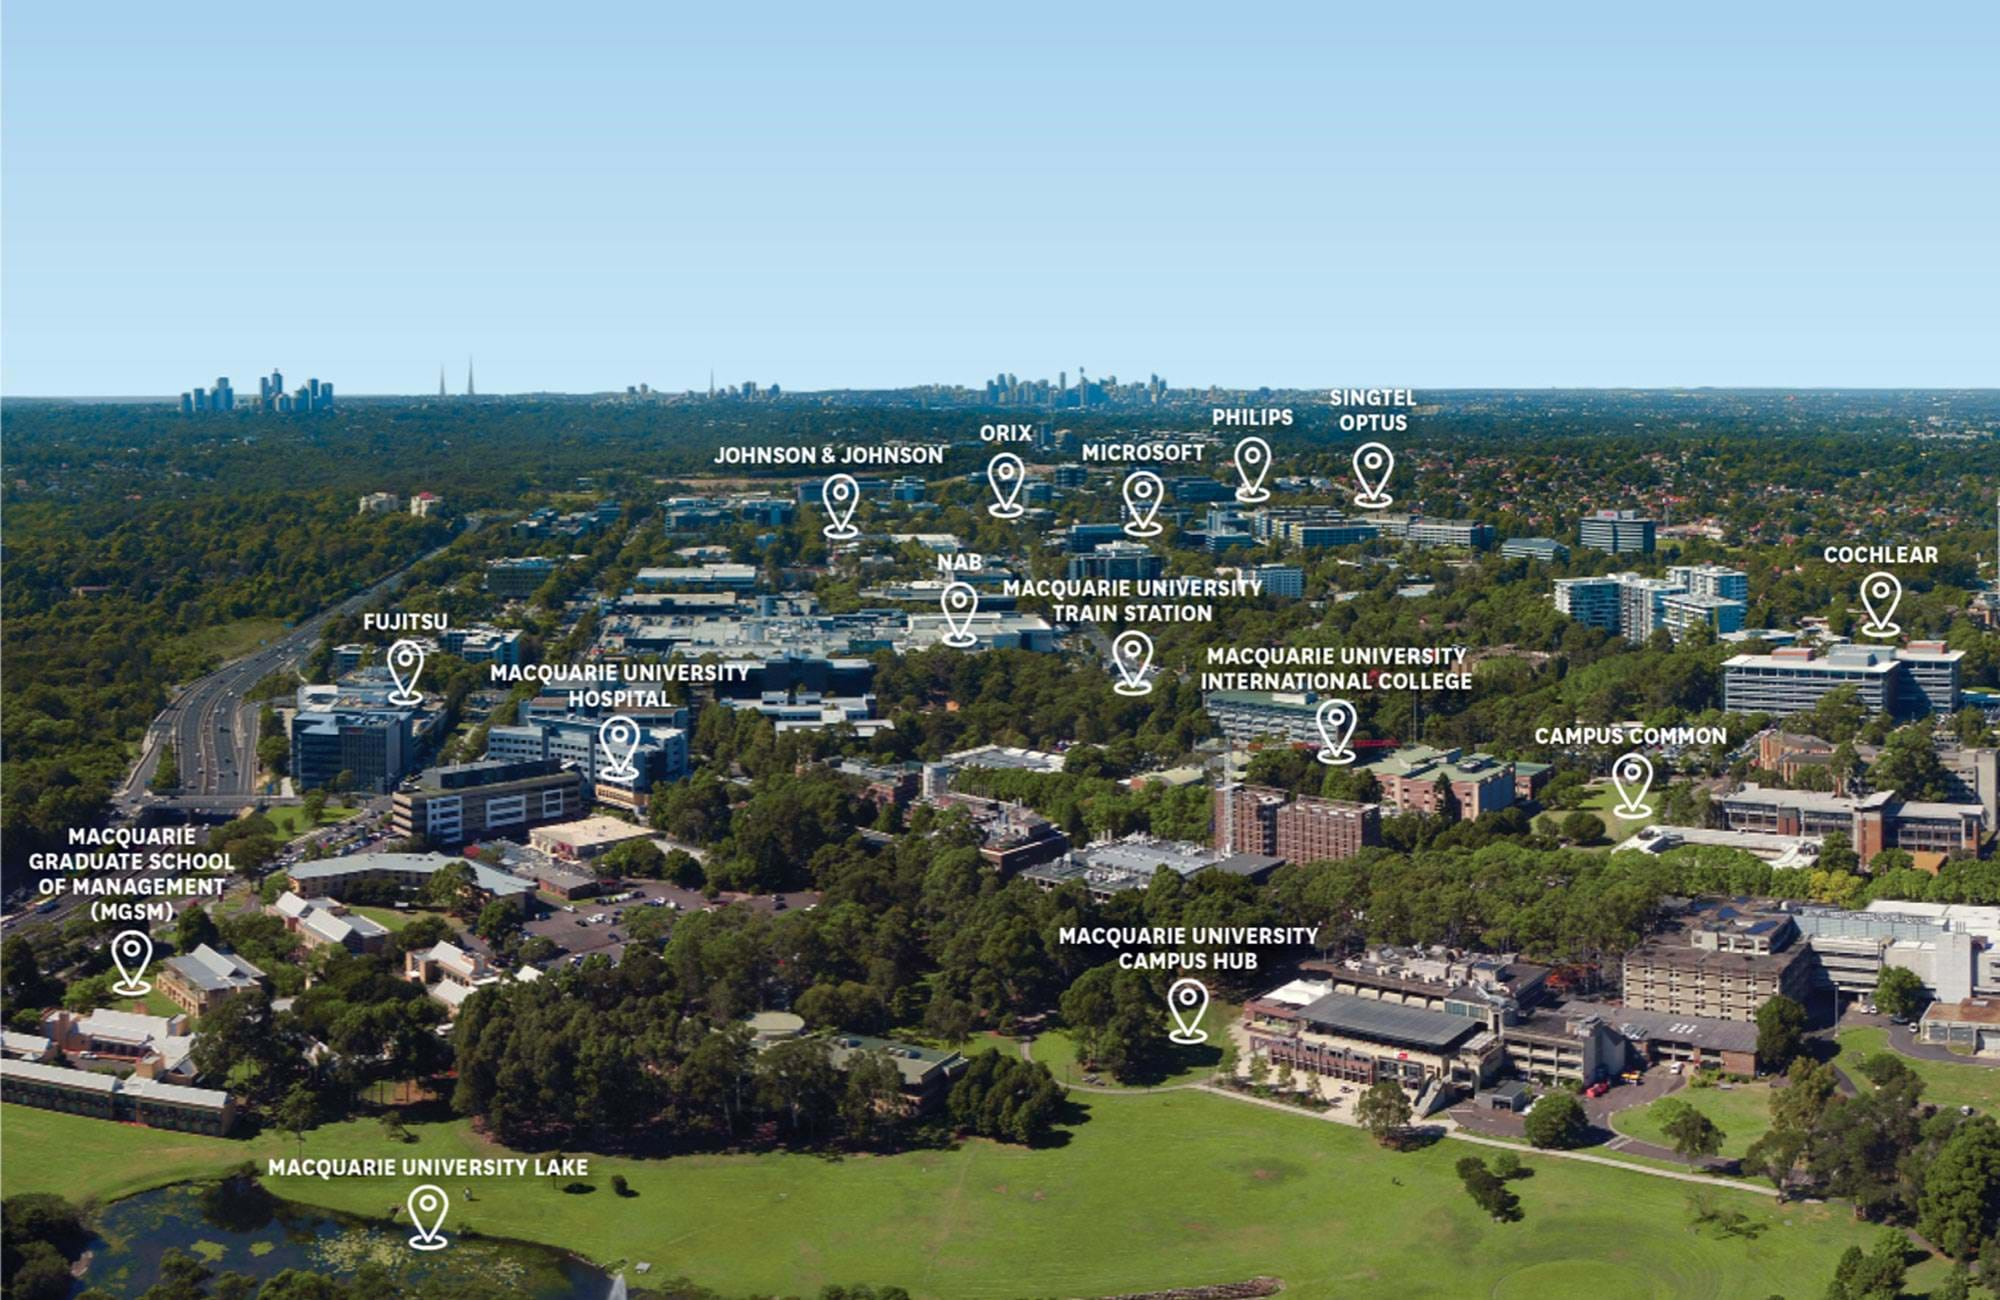 Macquarie University Campus Map